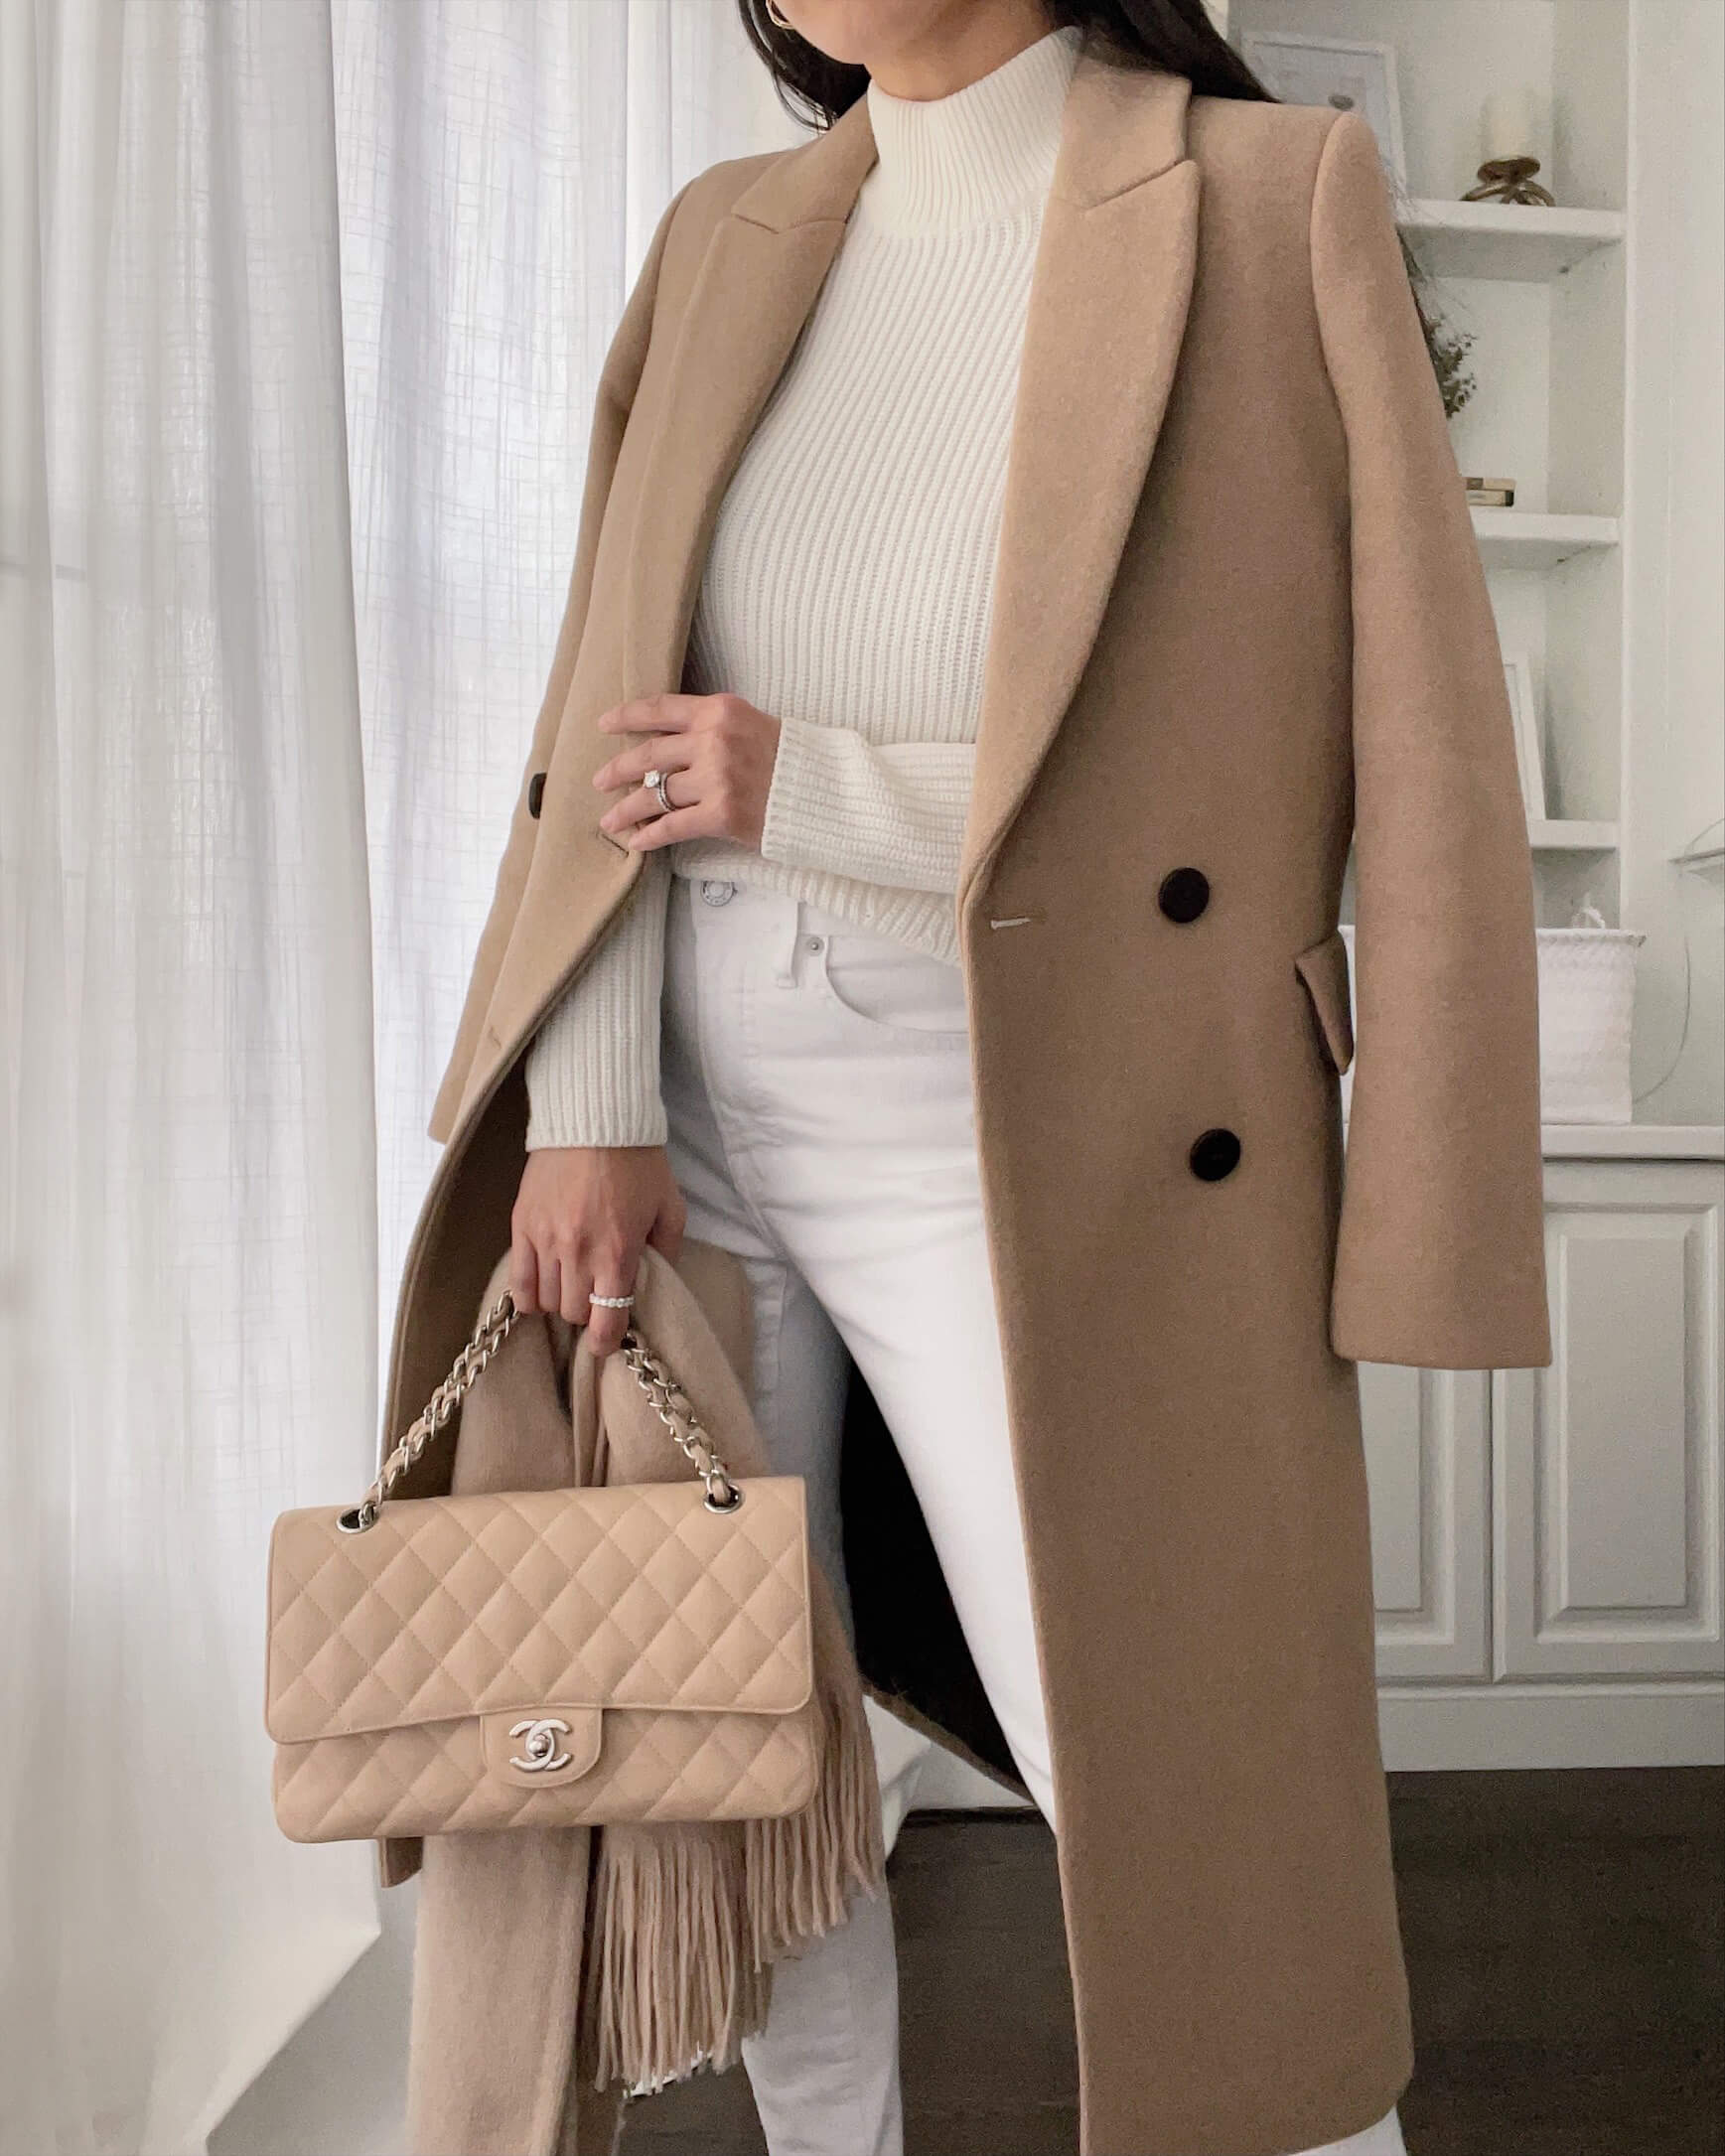 winter camel coat outfit